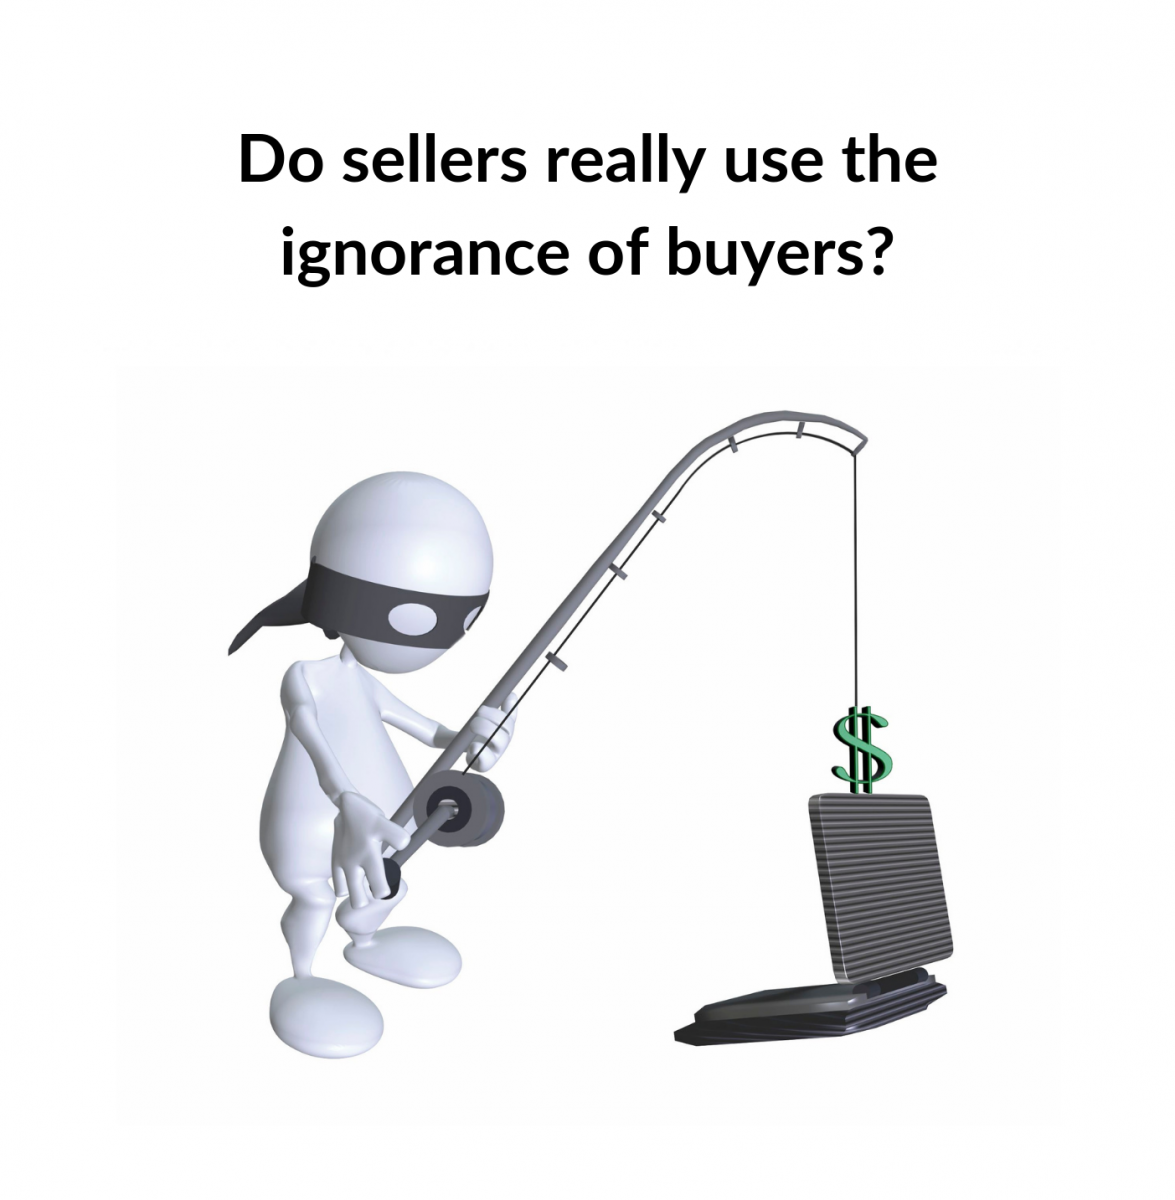 Do sellers really use the ignorance of buyers?